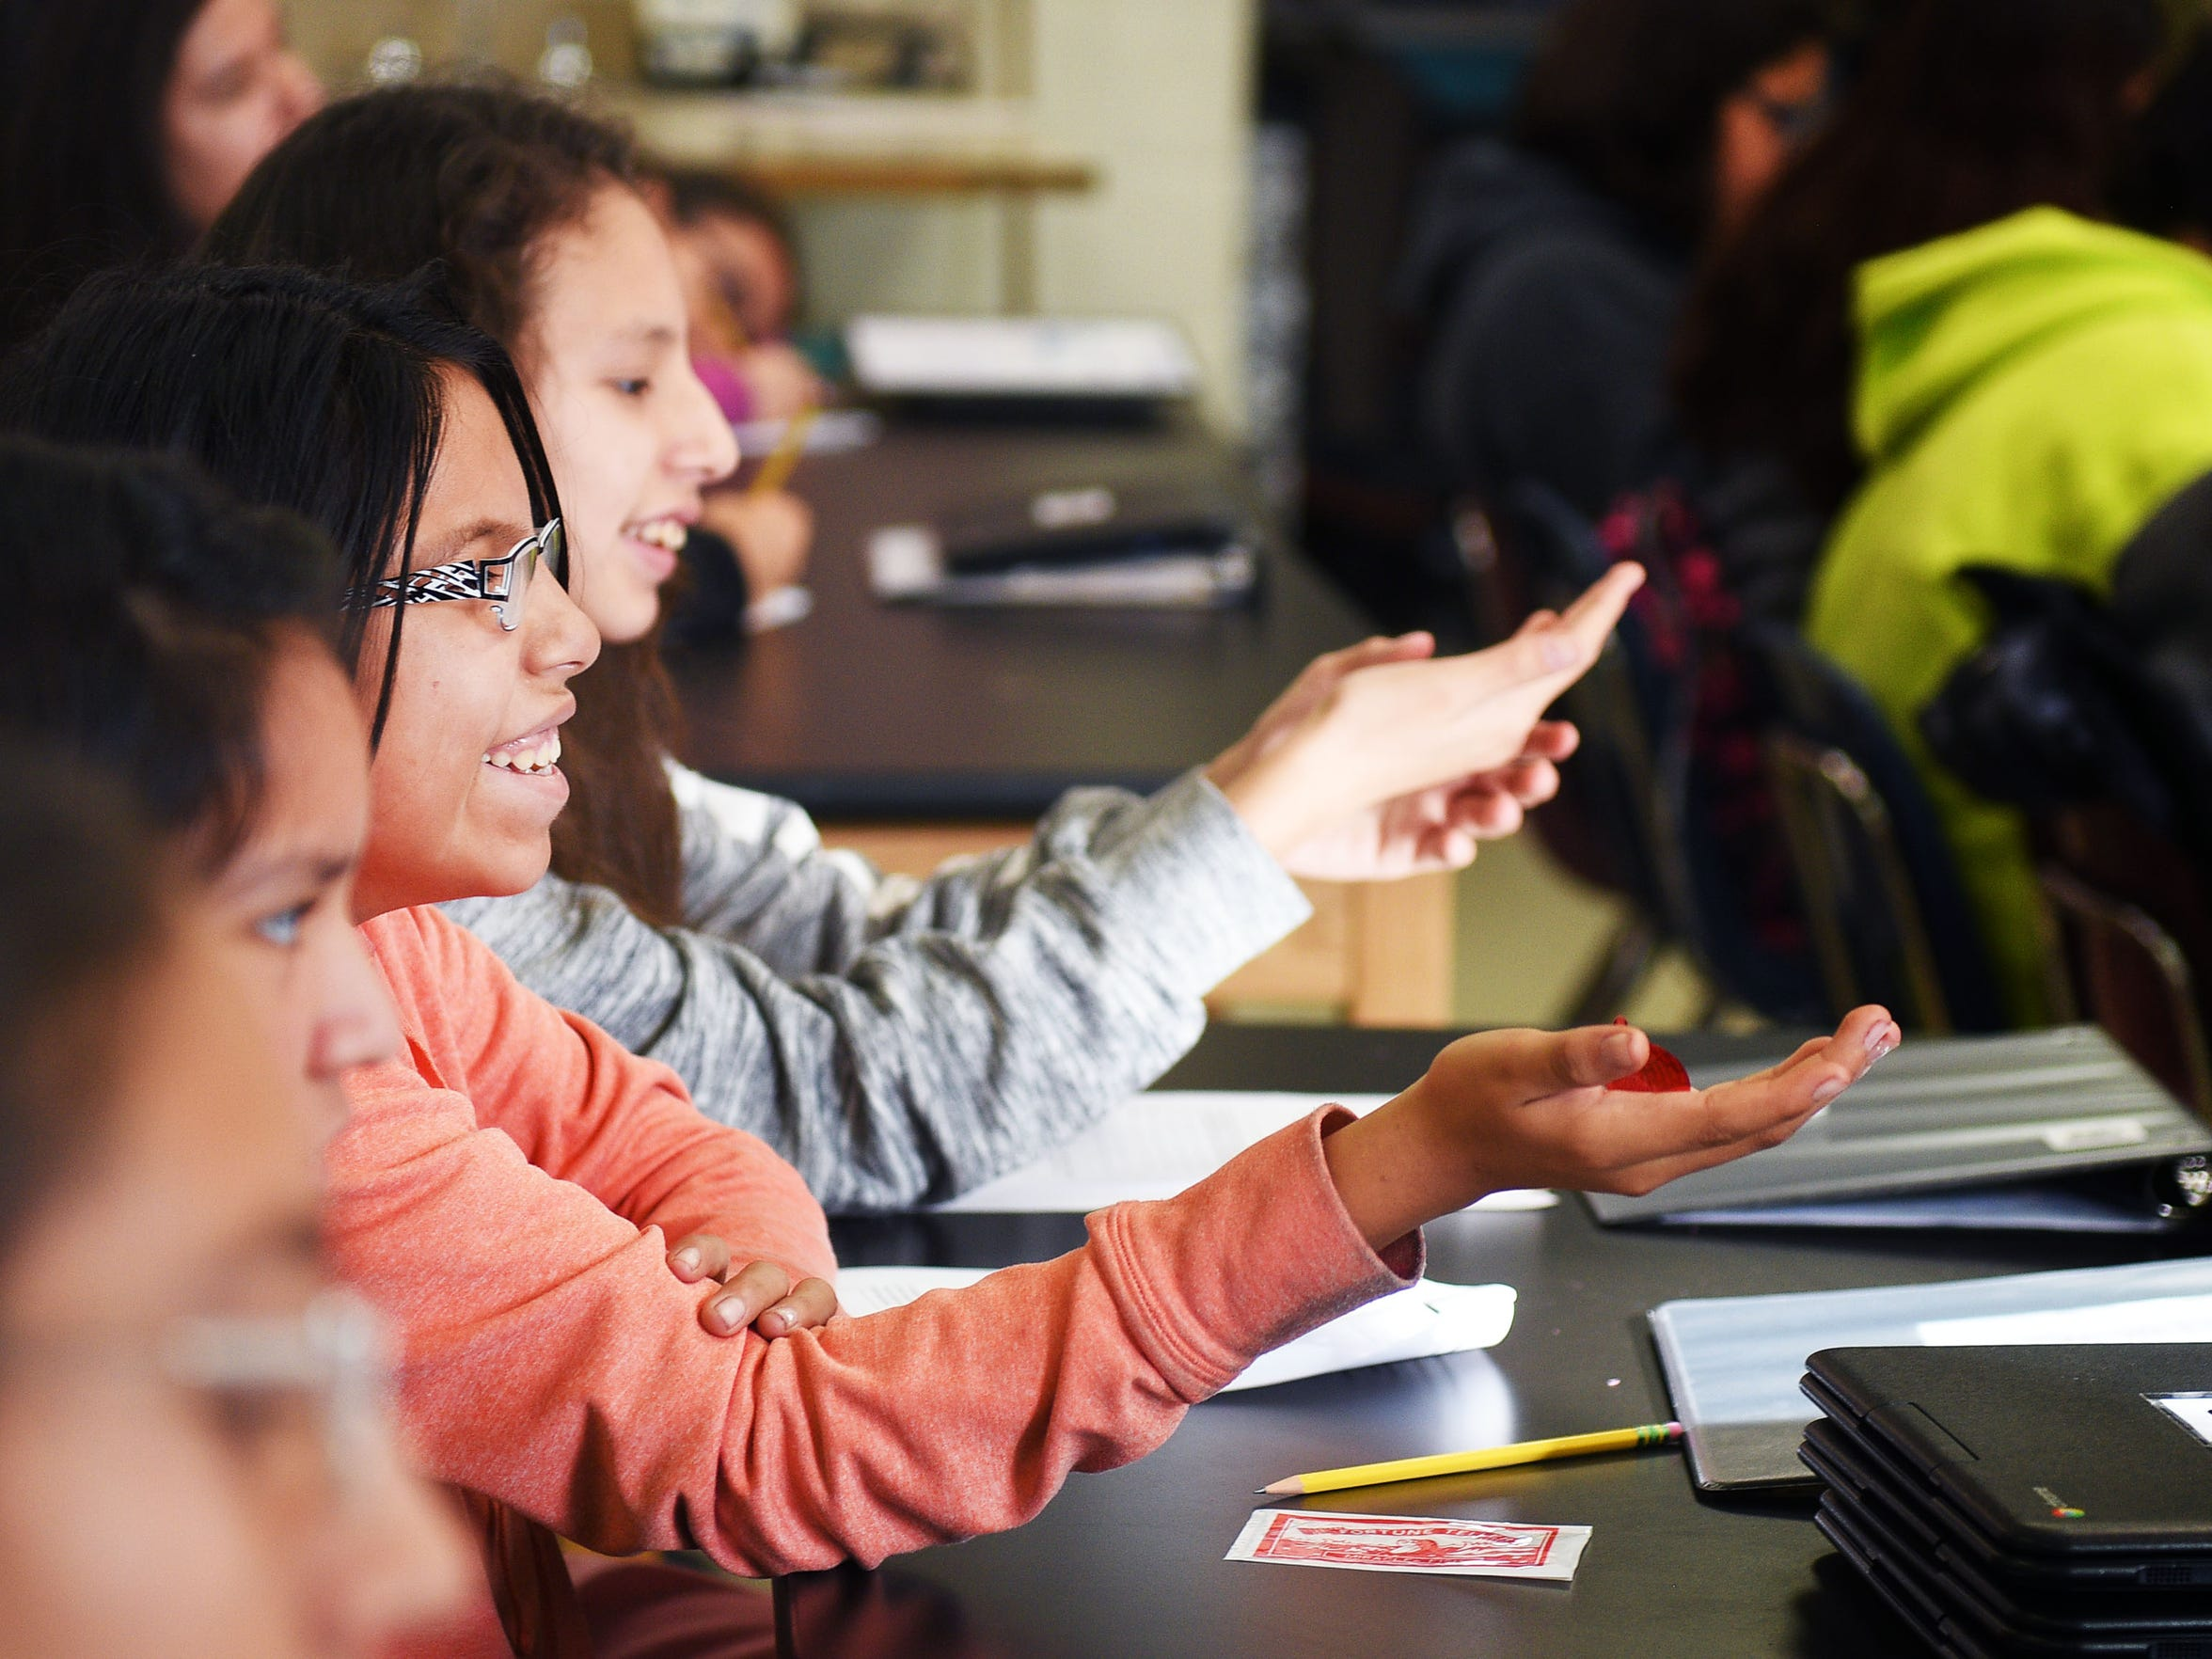 Todd County Middle Schooler Simone Iron Shell holds out her hand during a demonstration about friction in Kaelee Krege class Tuesday, Nov. 14, in Todd County, South Dakota.